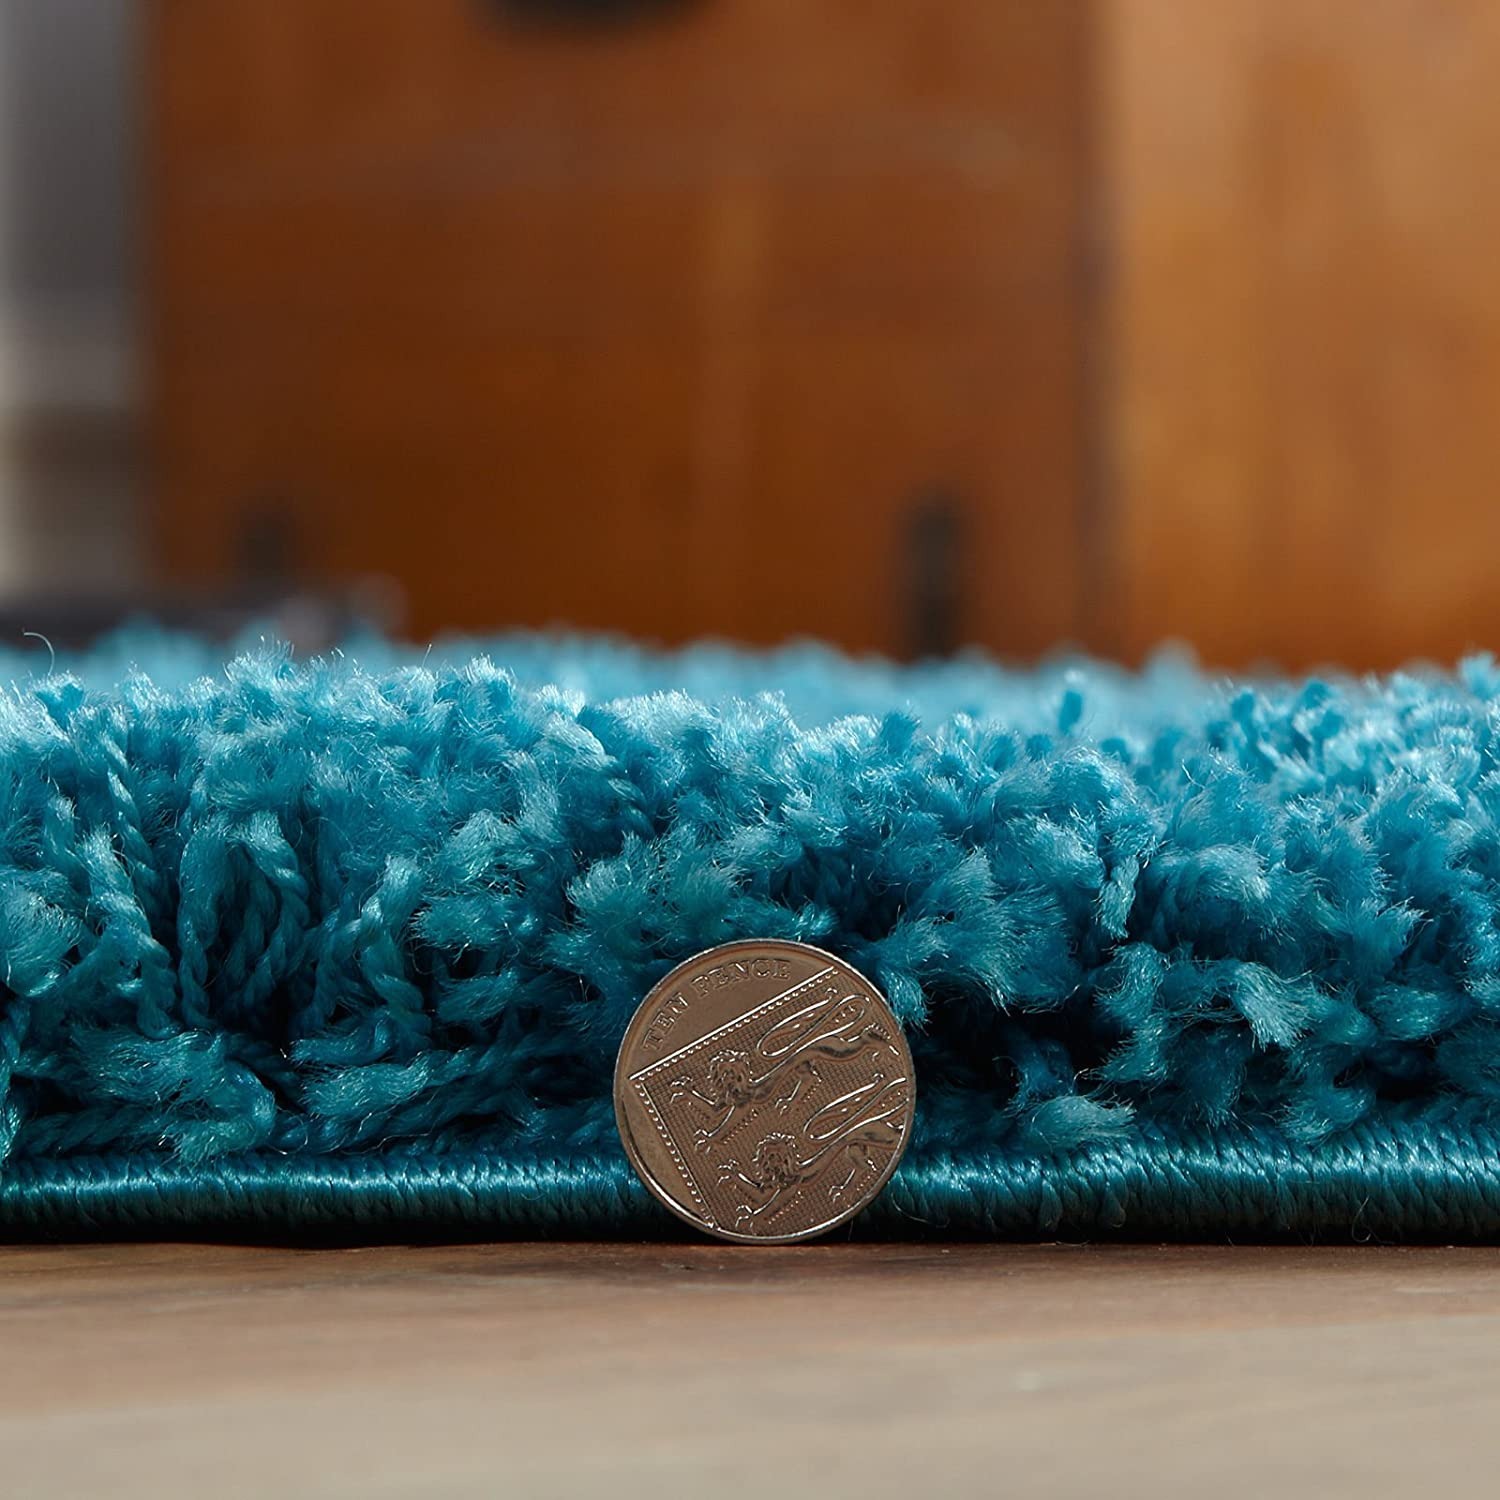 5 SIZES AVAILABLE 2ft 3 x 3ft 7 FB FunkyBuys/® SOFT LUXURIOUS TEAL BLUE 5CM THICK DENSE PILE TURQUOISE SHAGGY RUGS BEDROOM AND LIVING ROOM NON SHED ANTI SKID CARPETS 66cm x 110cm